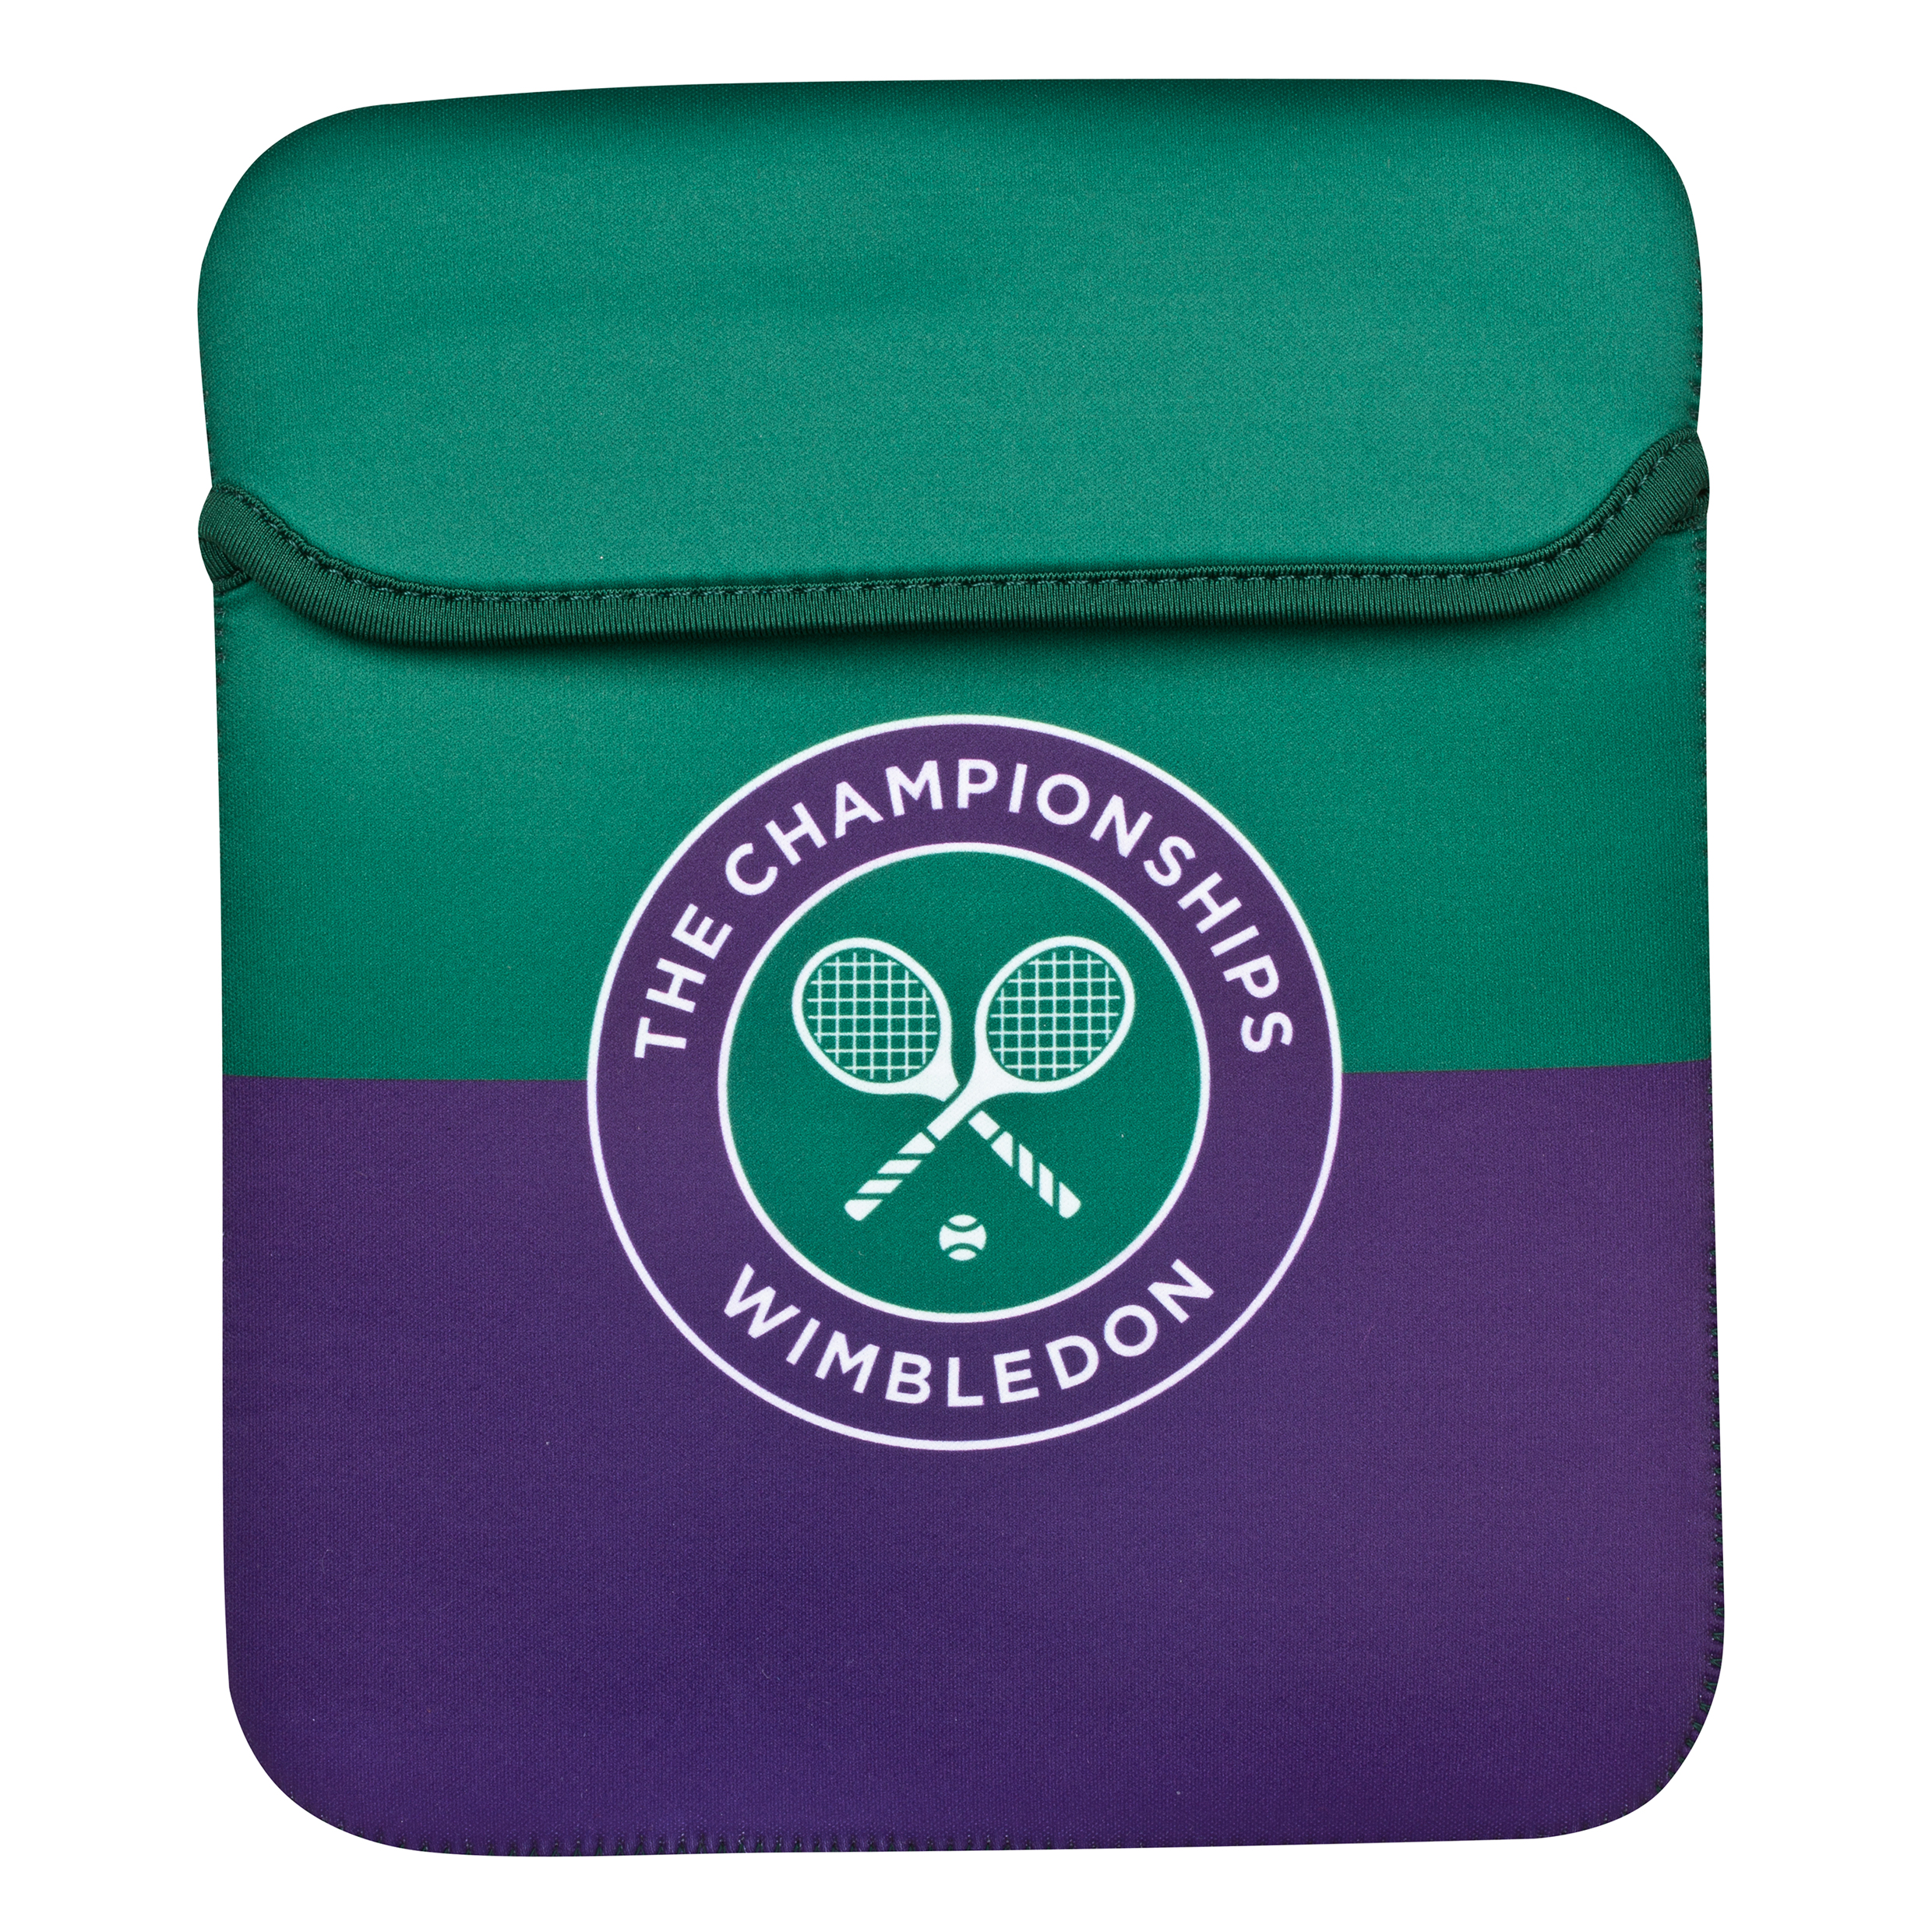 Wimbledon Tablet Cover